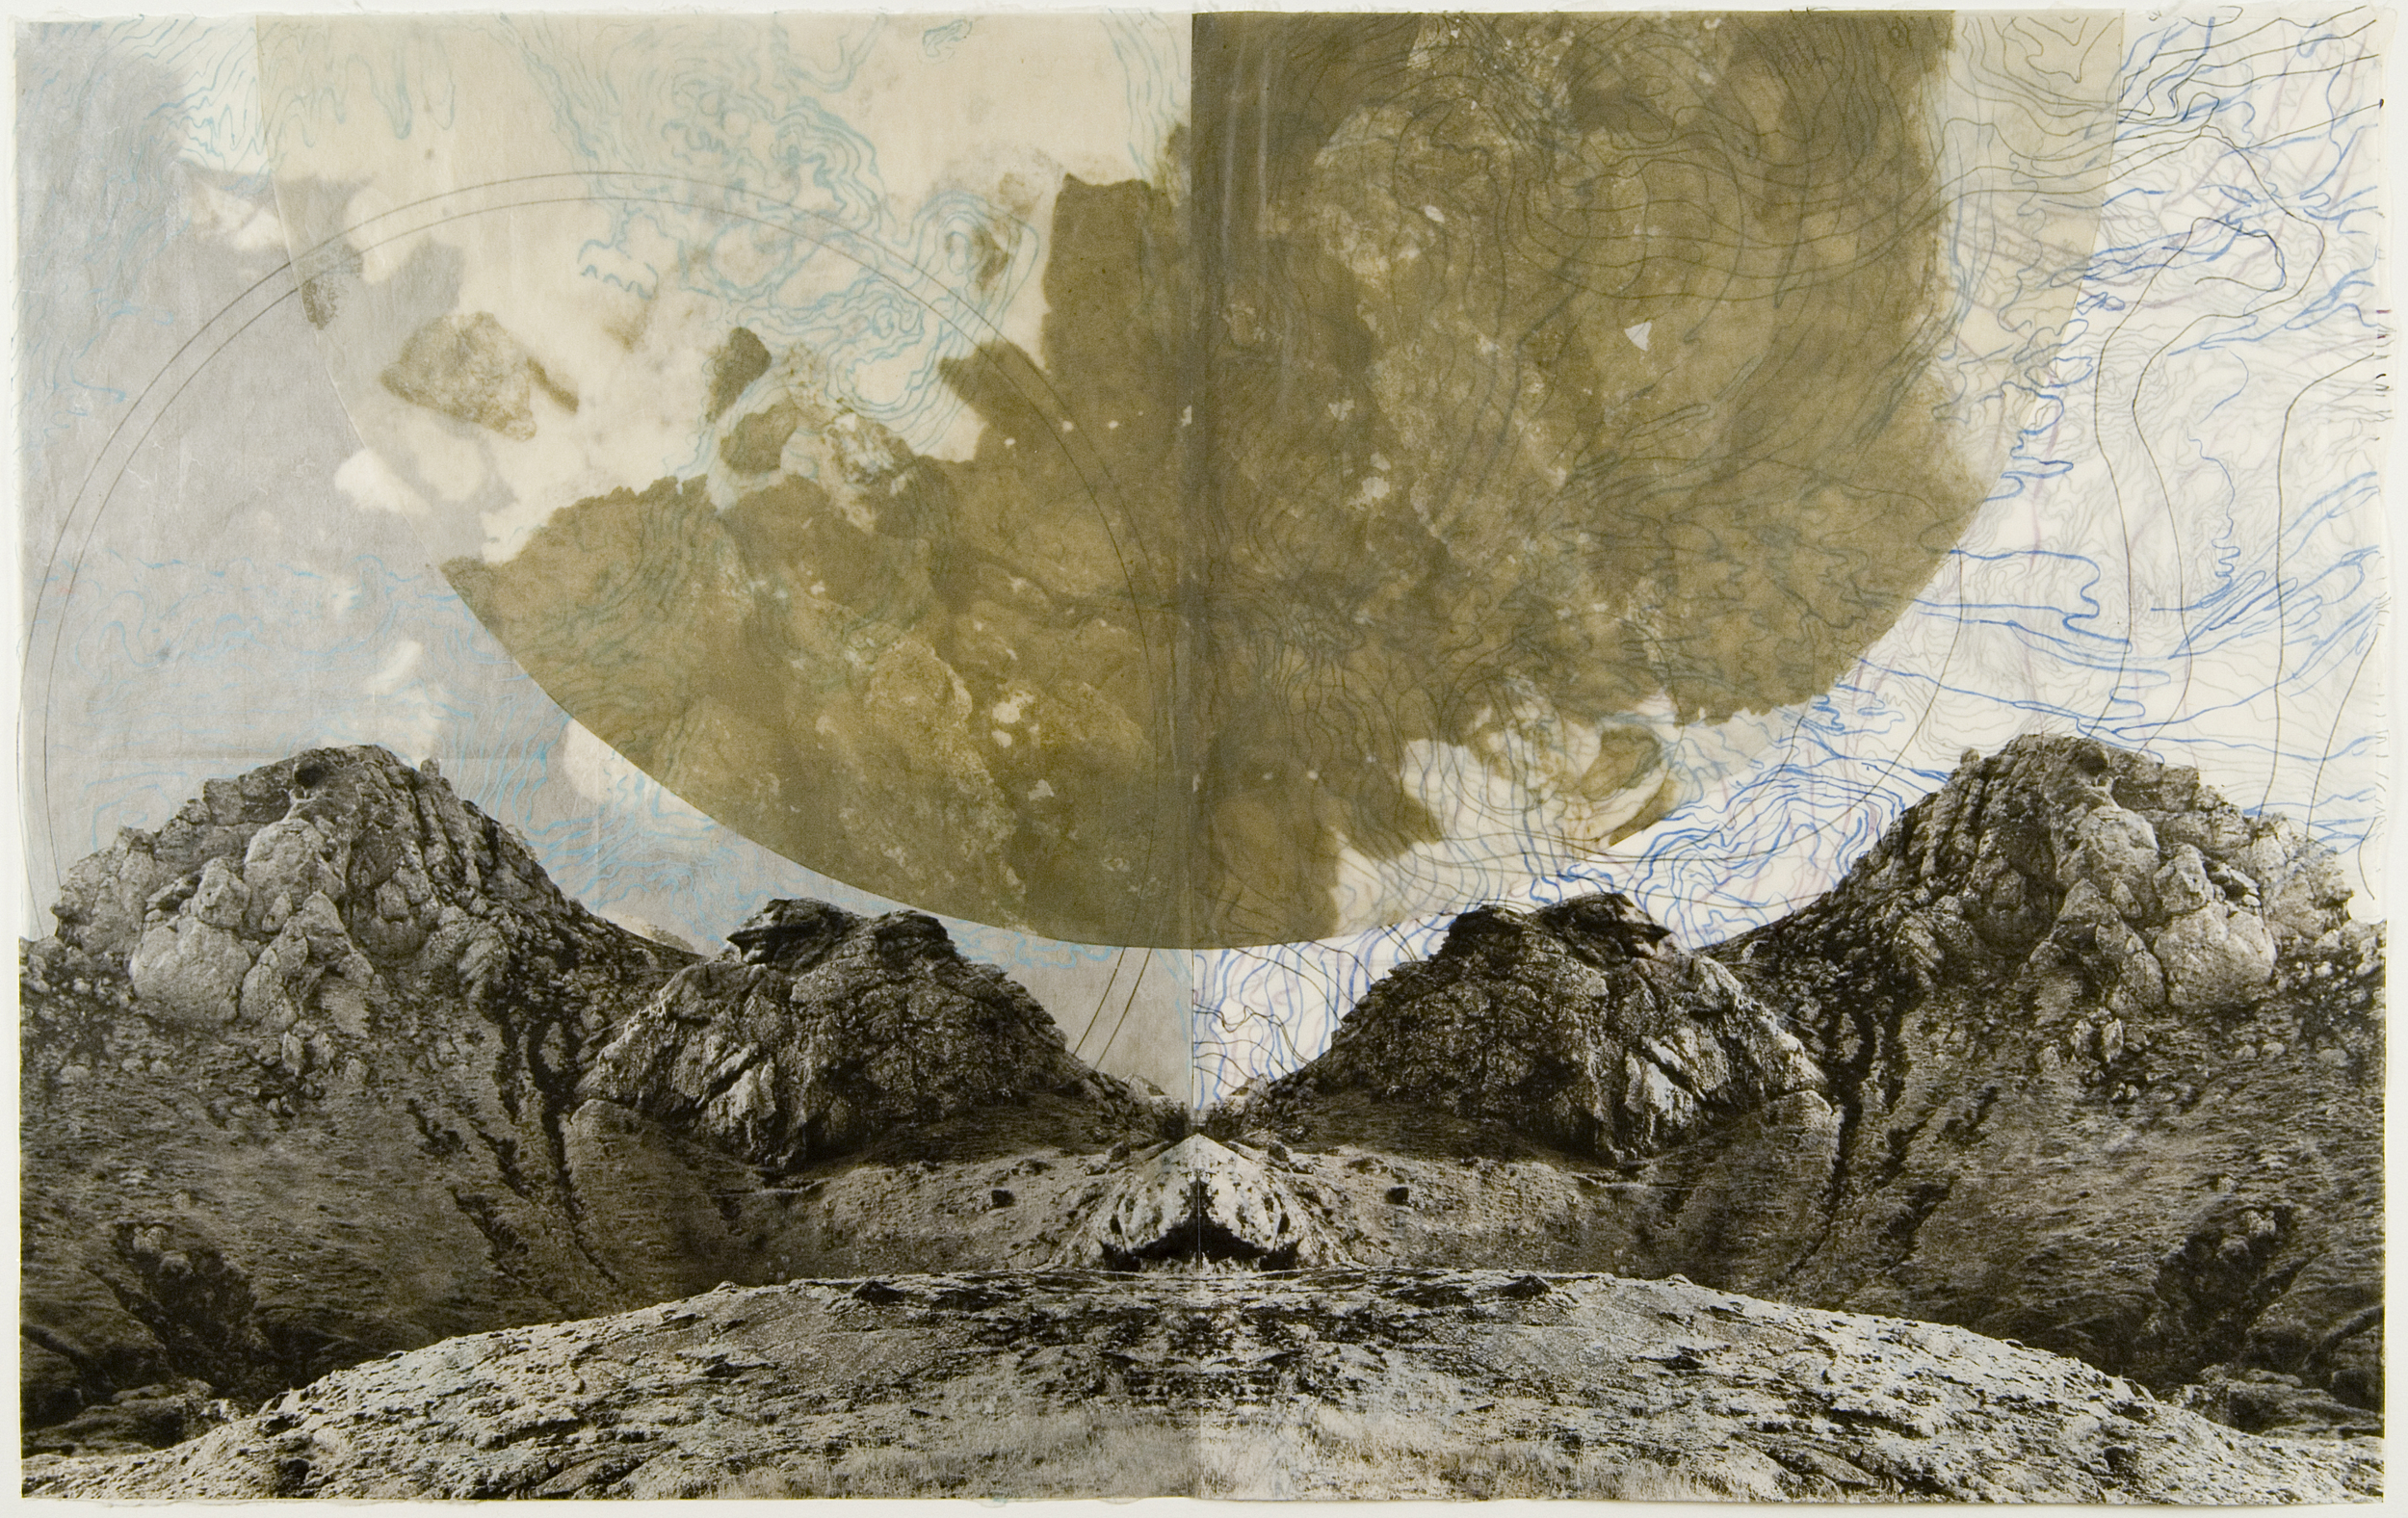 """New Moon, 2007   Photogravure on kozo shi, oil paint, wax,in layers   24.75"""" X 39.25"""""""